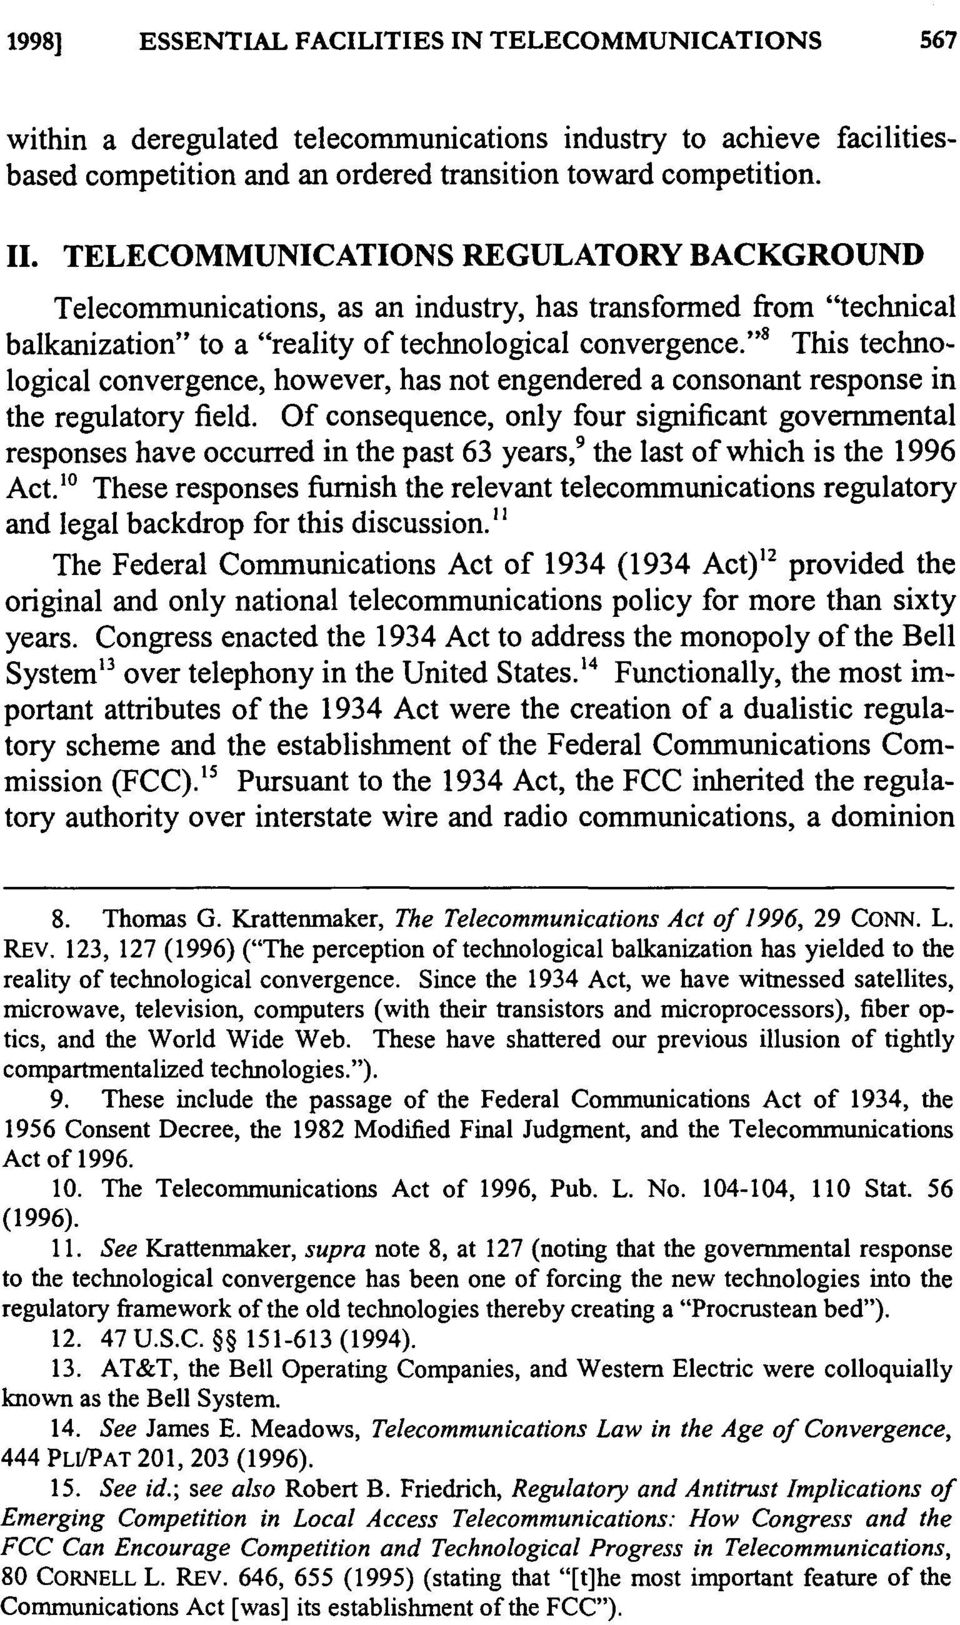 """ s This technological convergence, however, has not engendered a consonant response in the regulatory field."